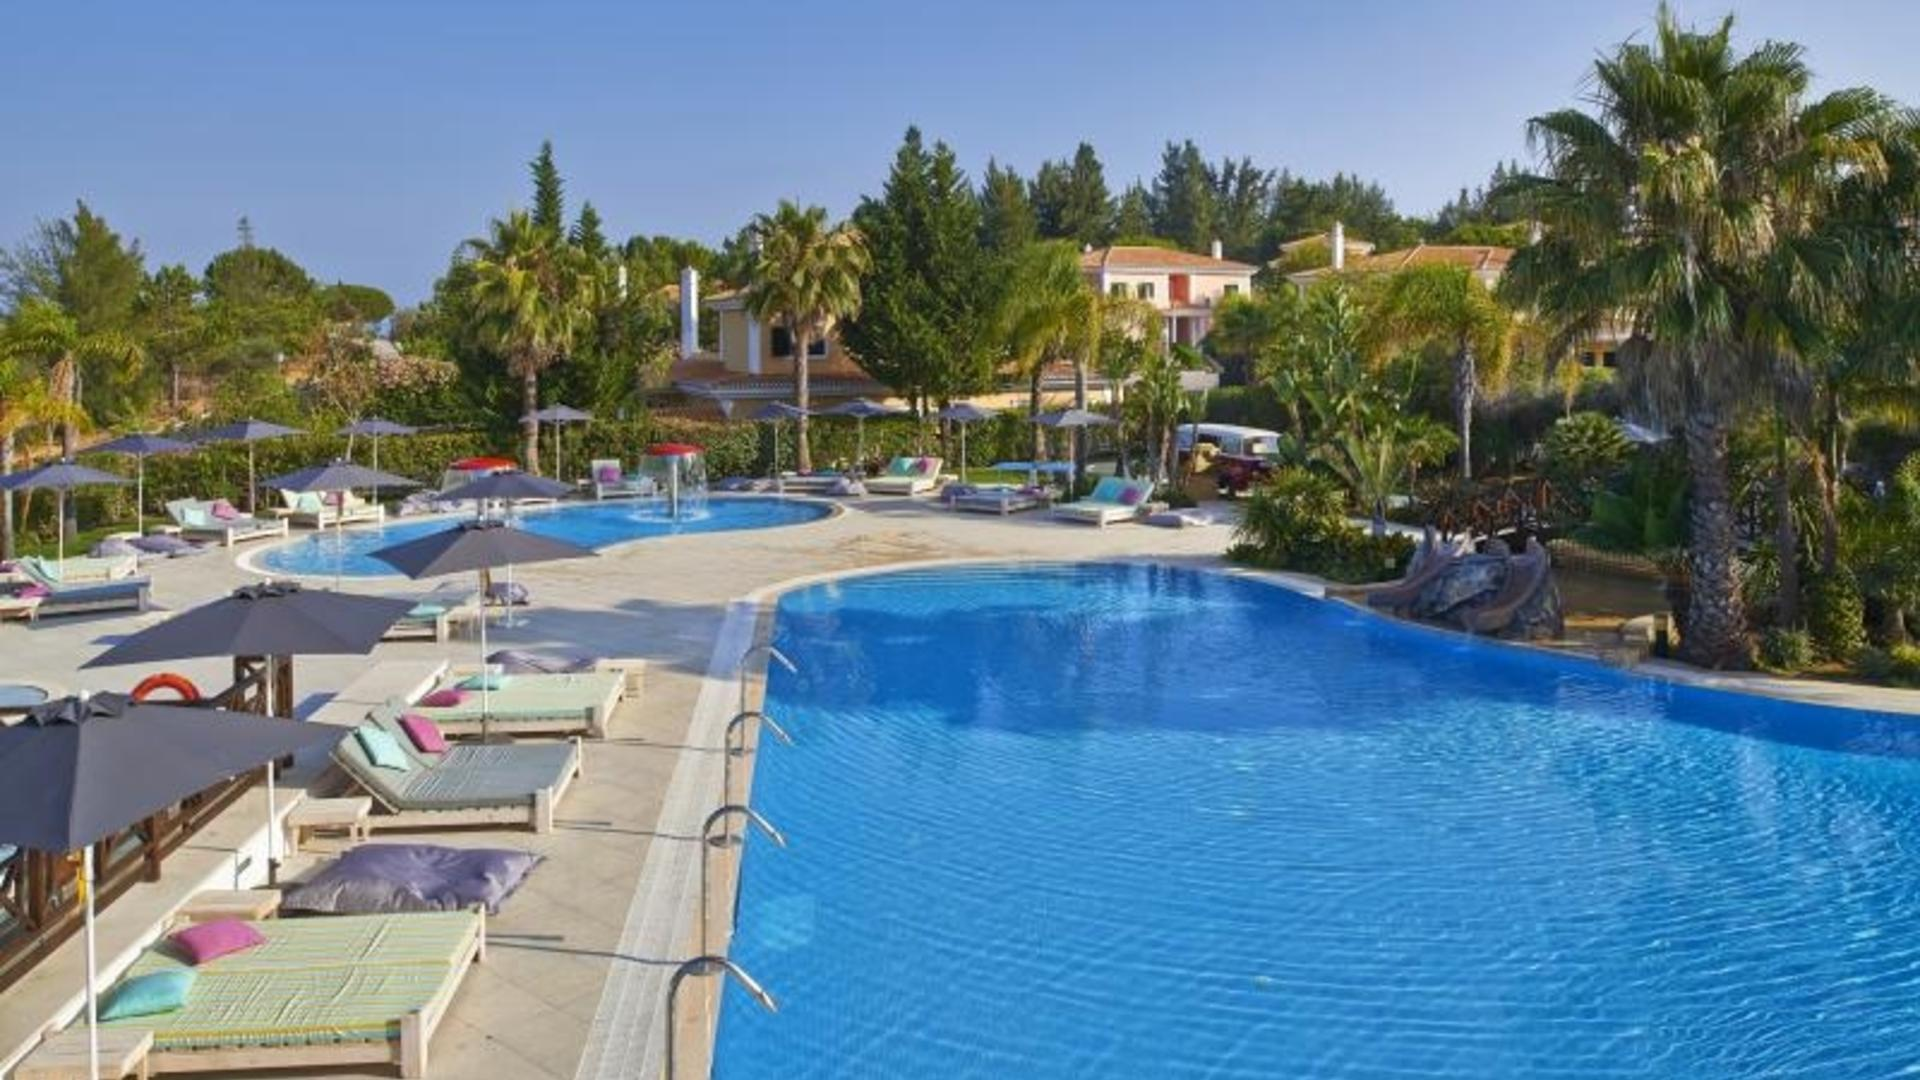 child friendly holiday resort in the Algarve Portugal - MAQU